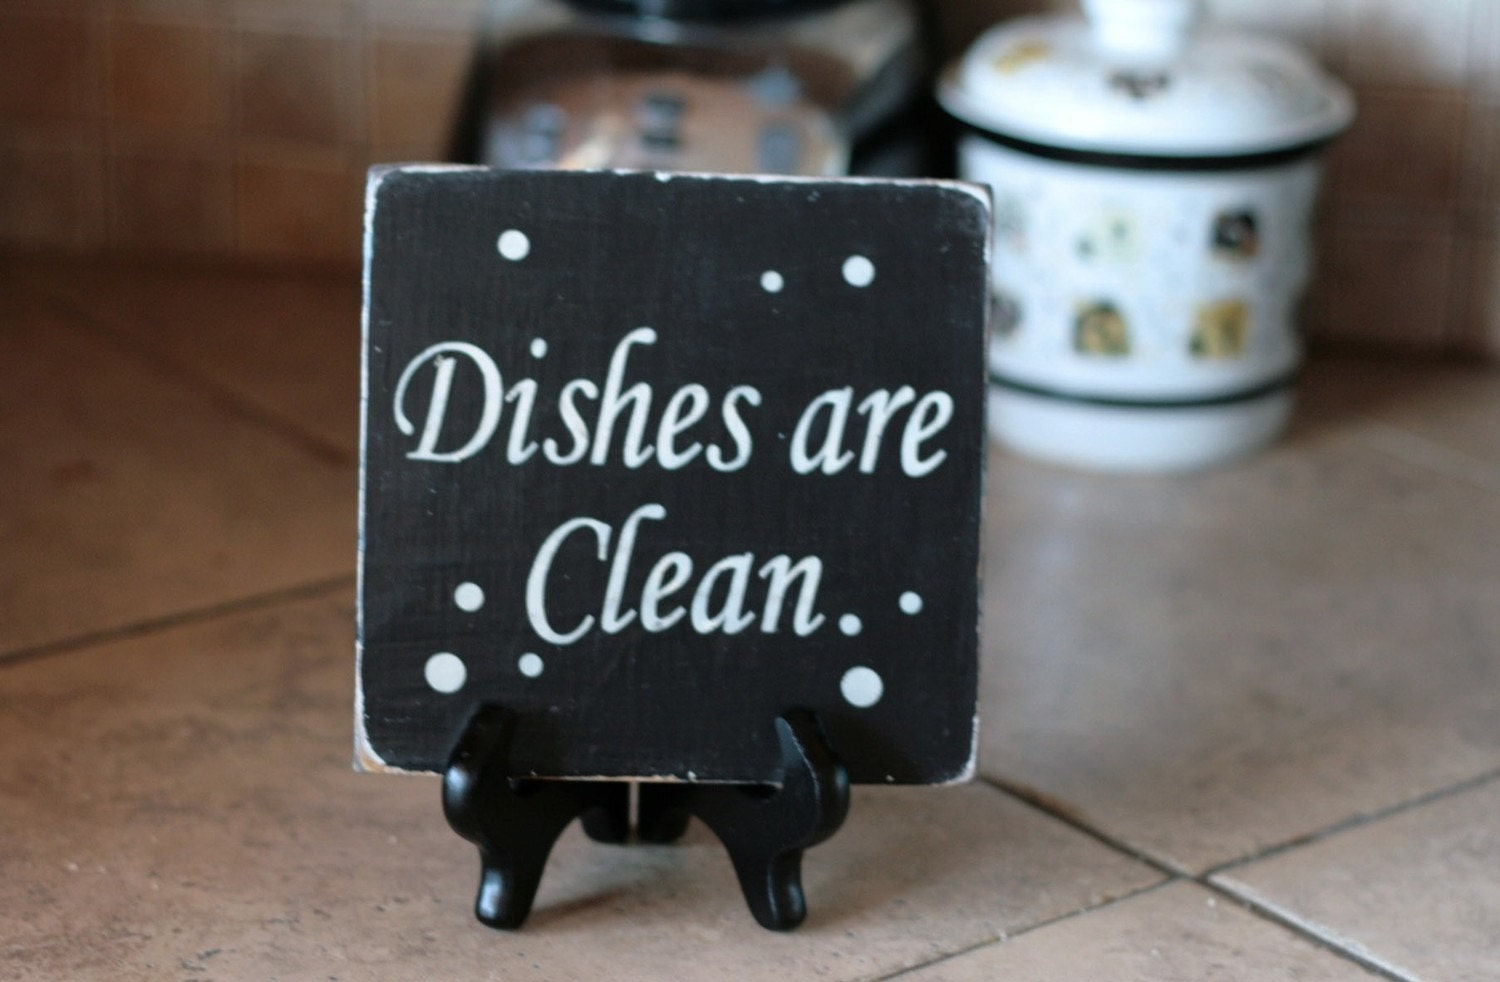 clean dishes sign - photo #30